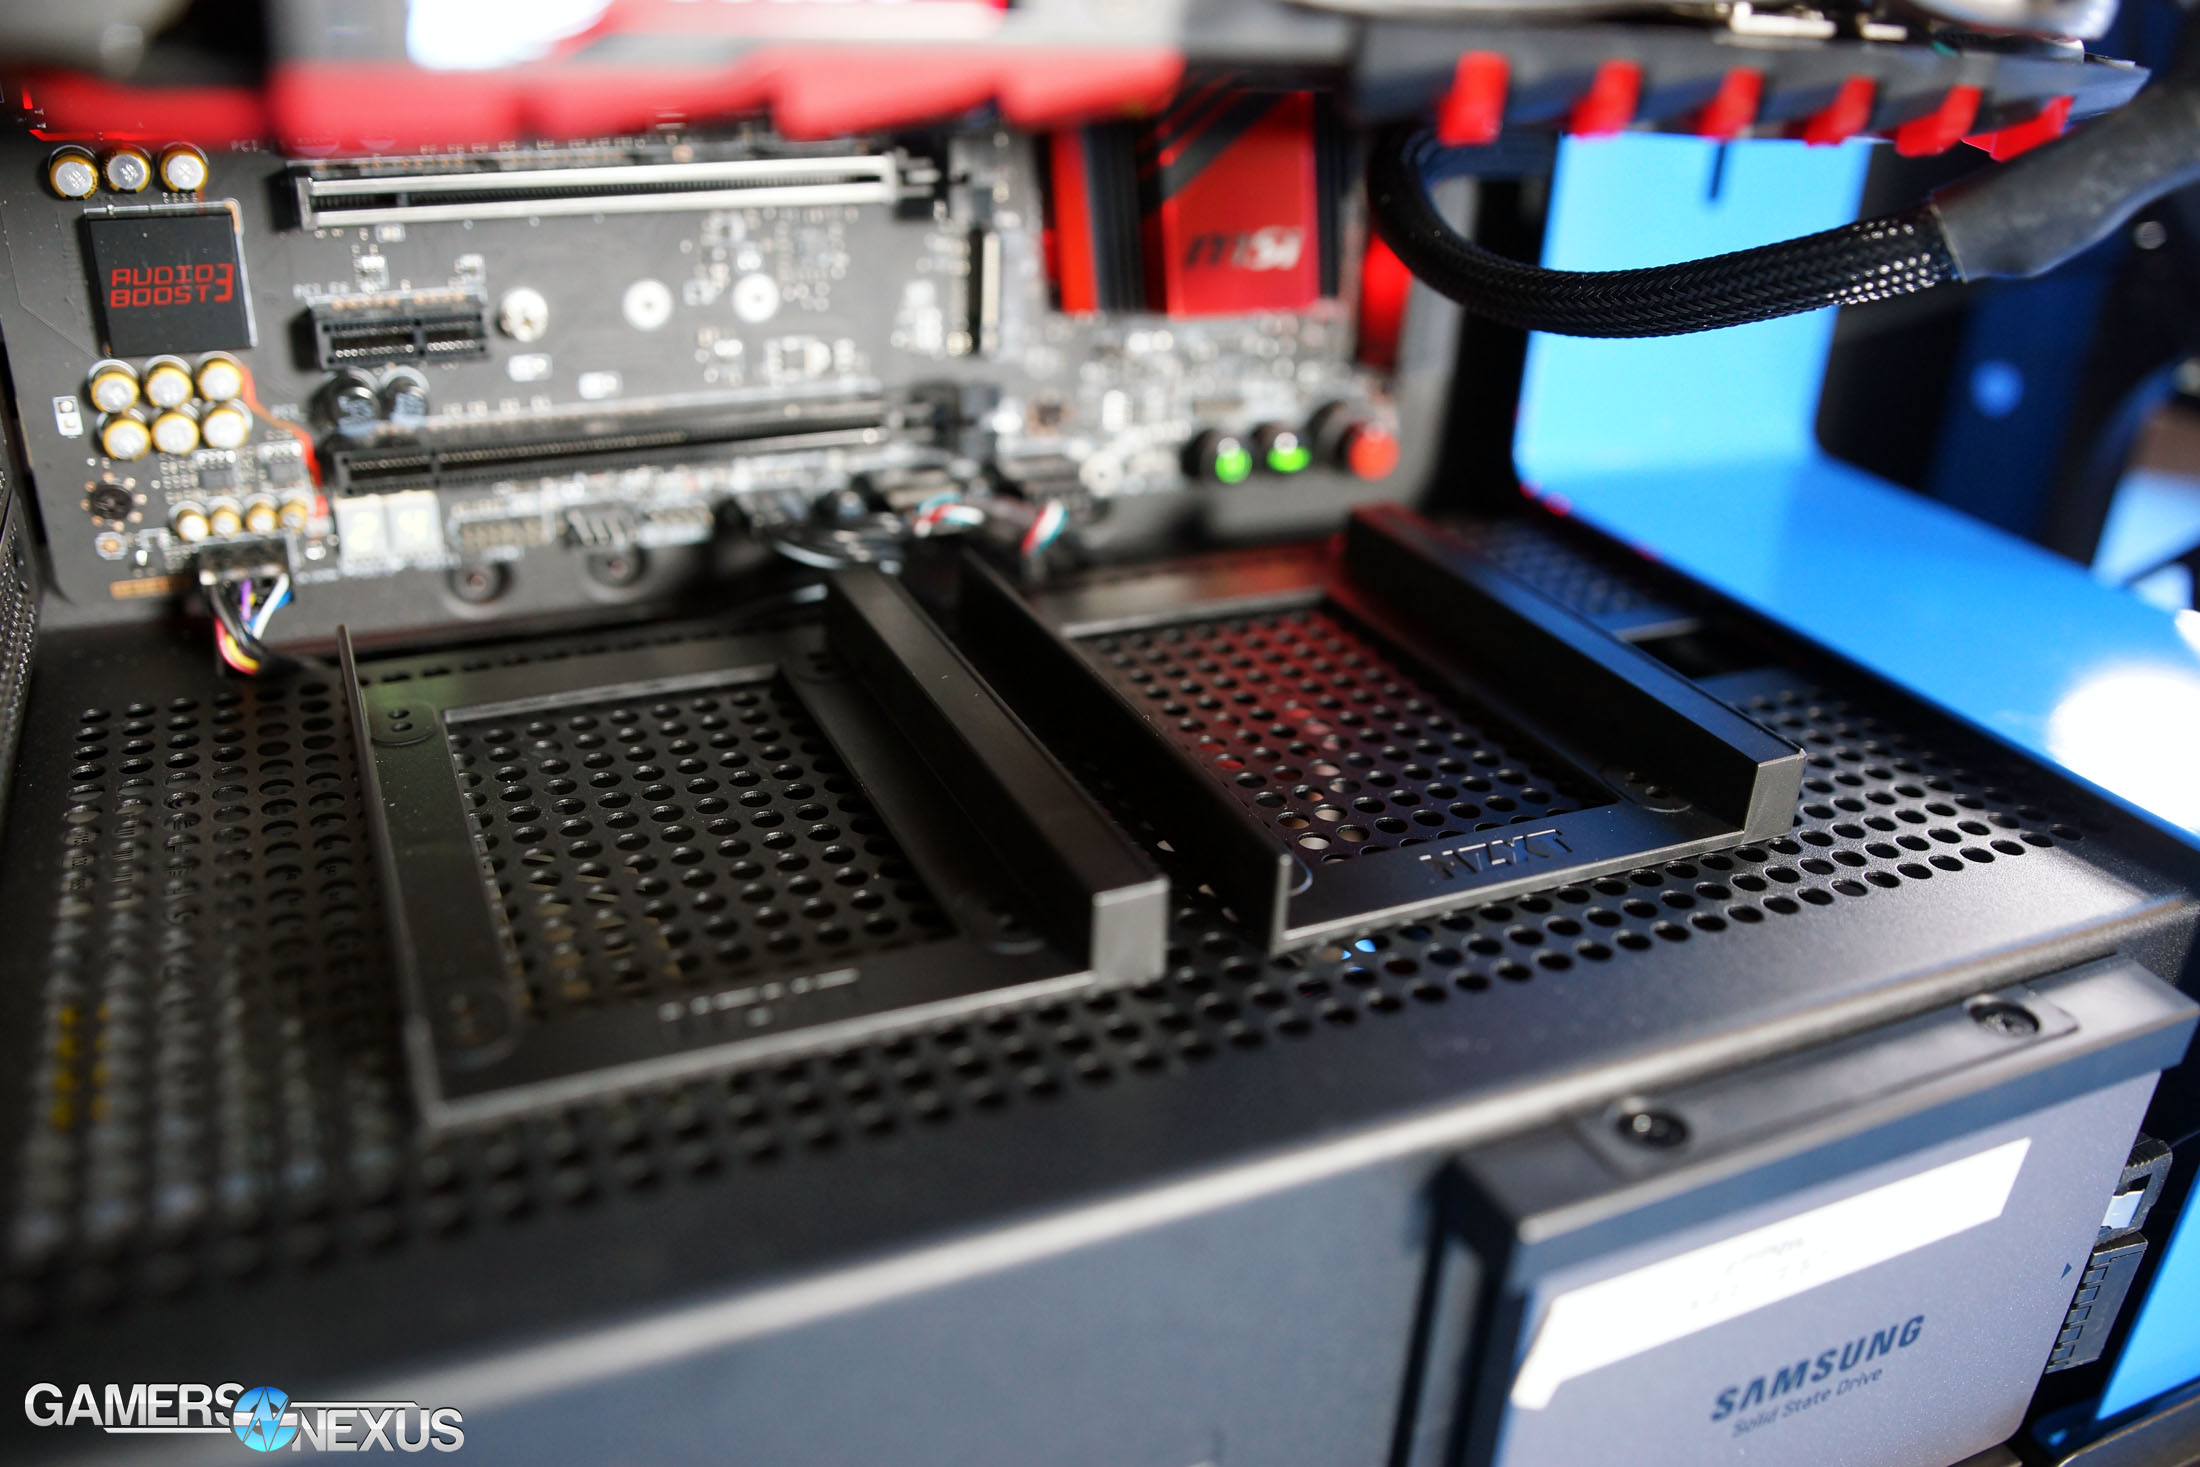 NZXT H700i Case Review: Better Without the 'Smart' Device